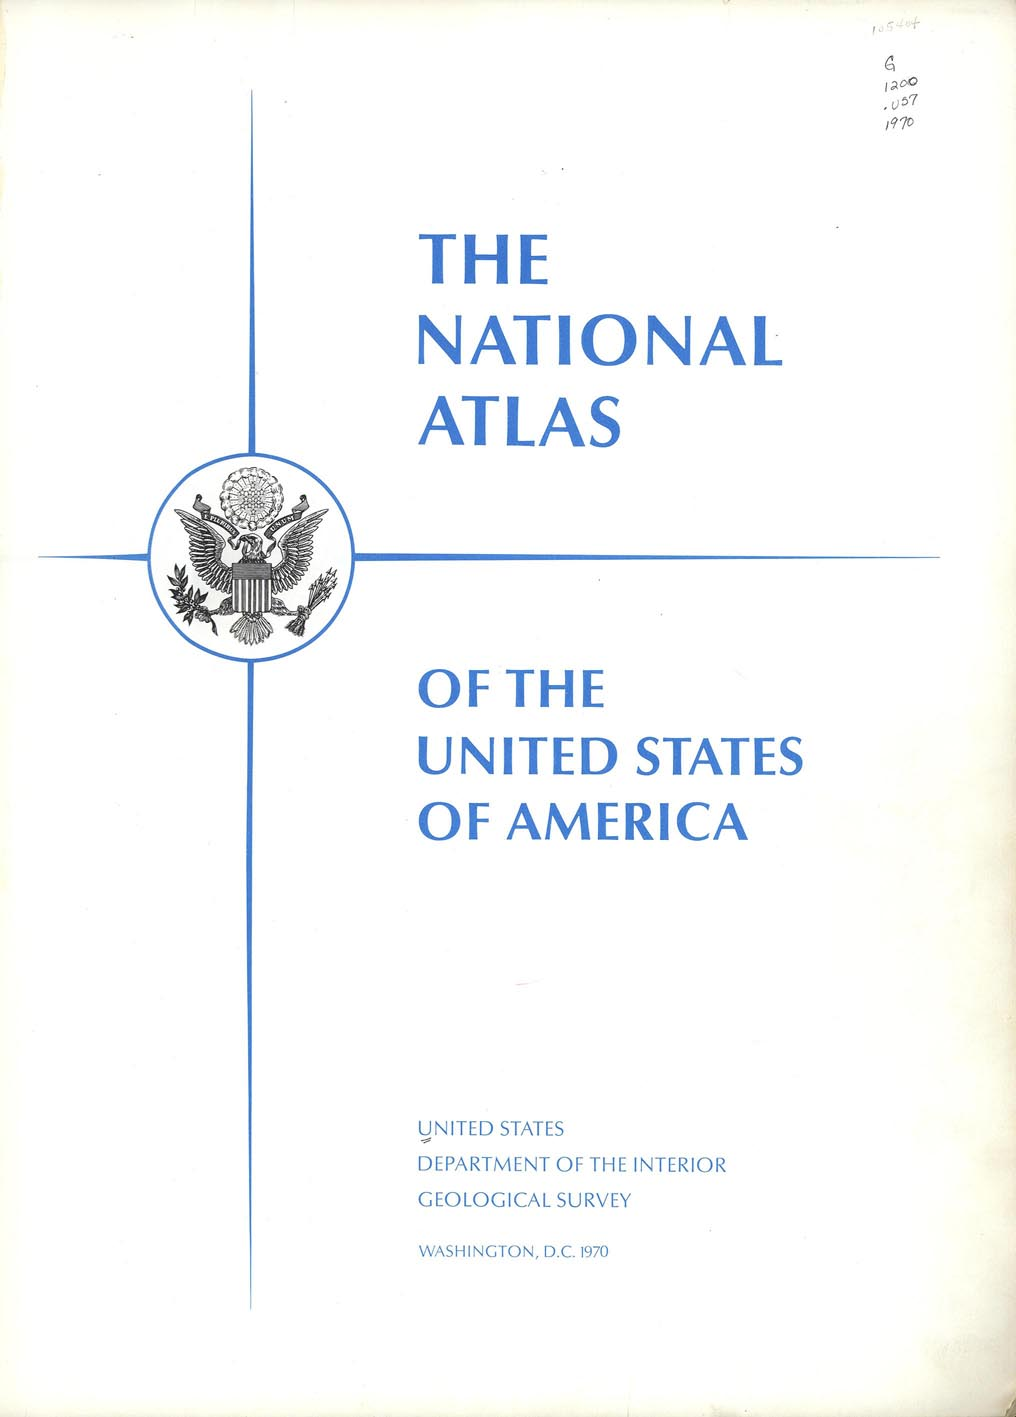 Us Map Certification.The National Atlas Of The United States Of America Perry Castaneda